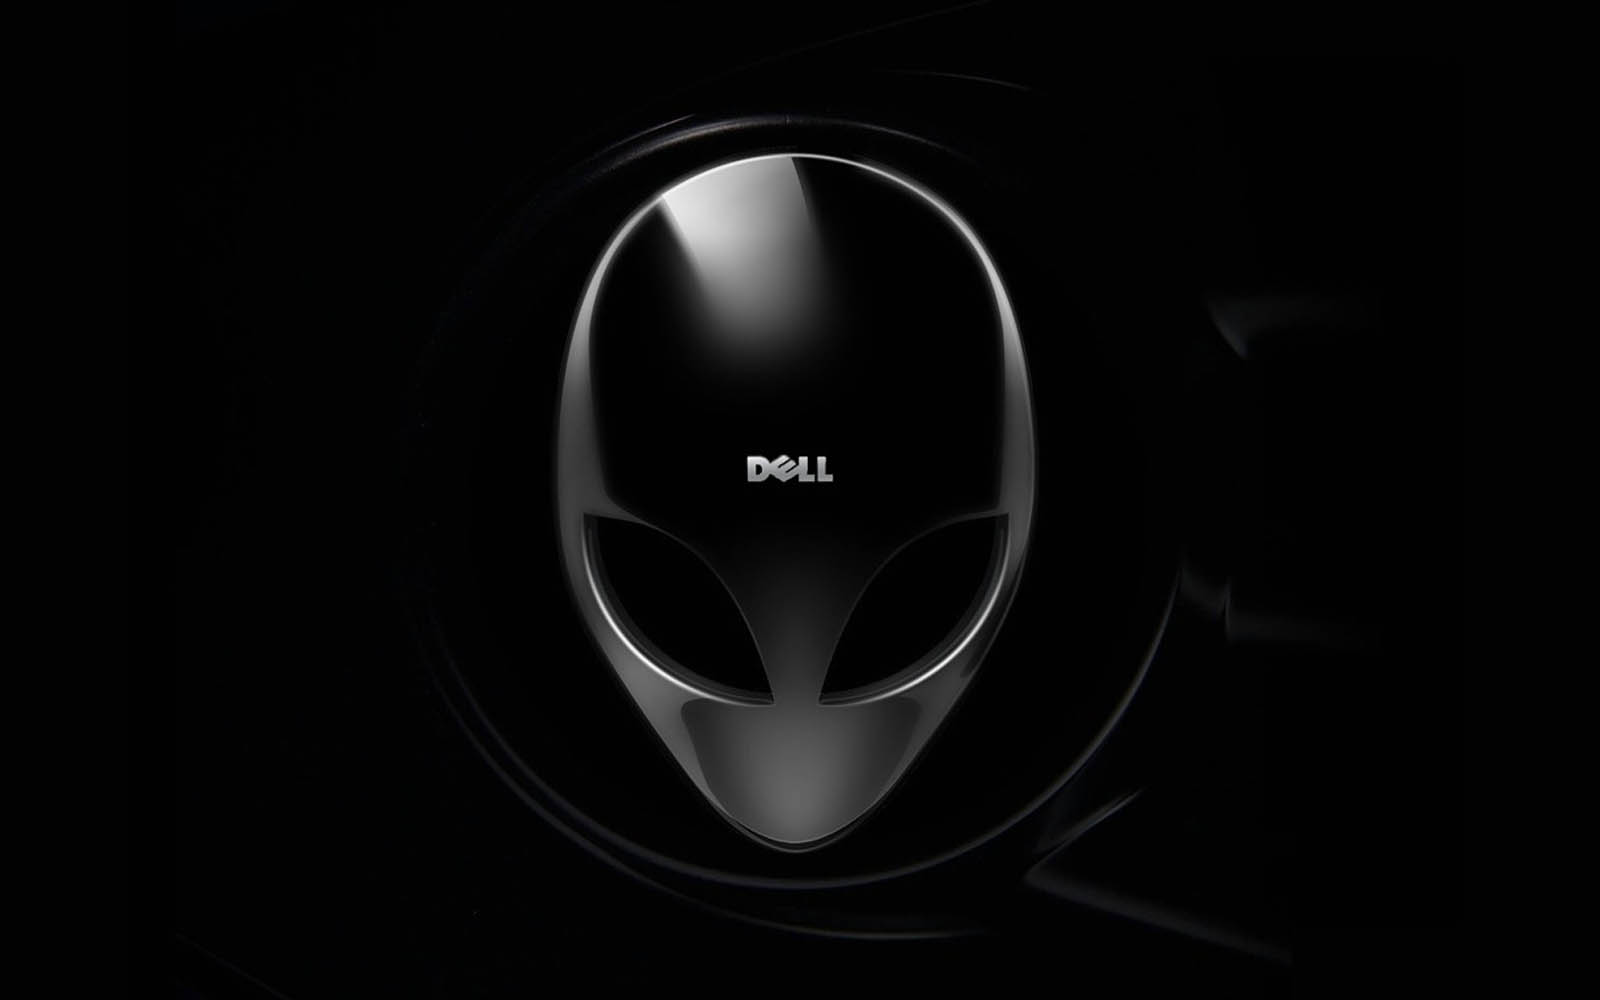 Hq Dell Wallpaper Full Hd Pictures